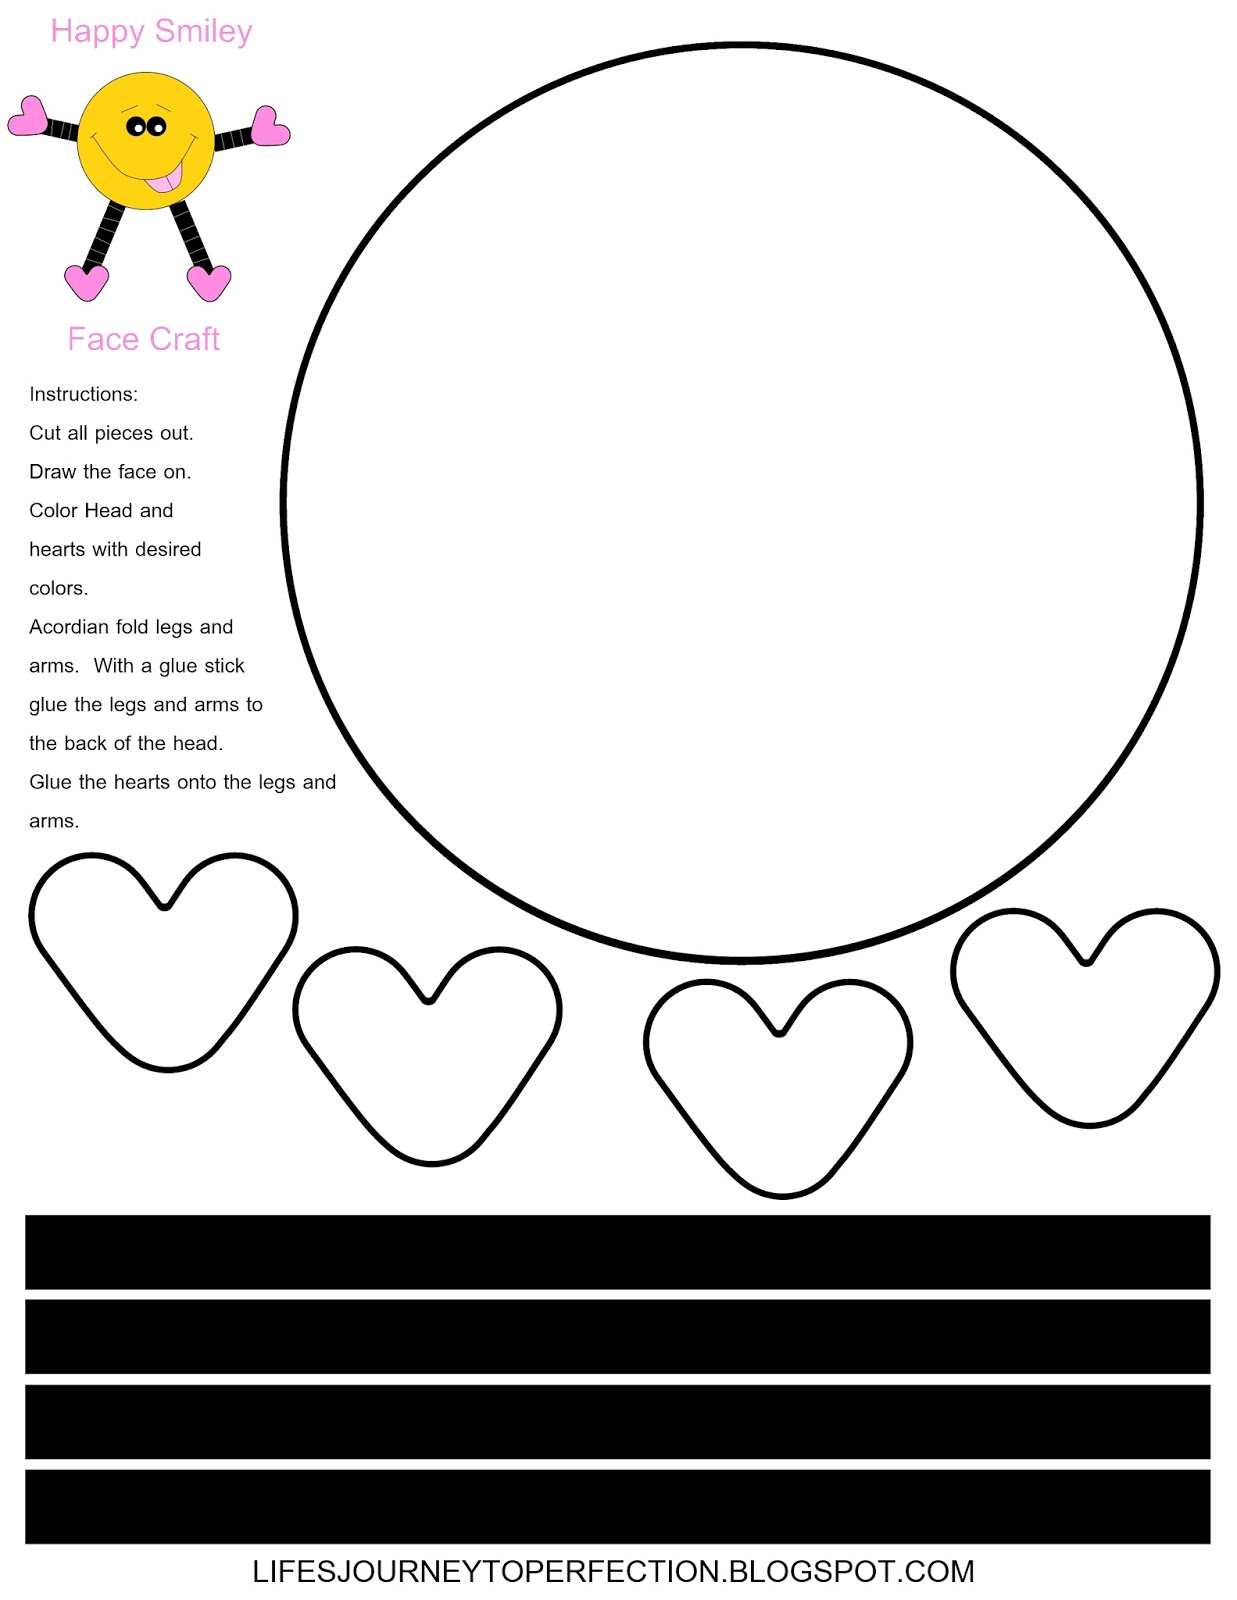 Life S Journey To Perfection Smiley Face Valentine S Day Craft Printable